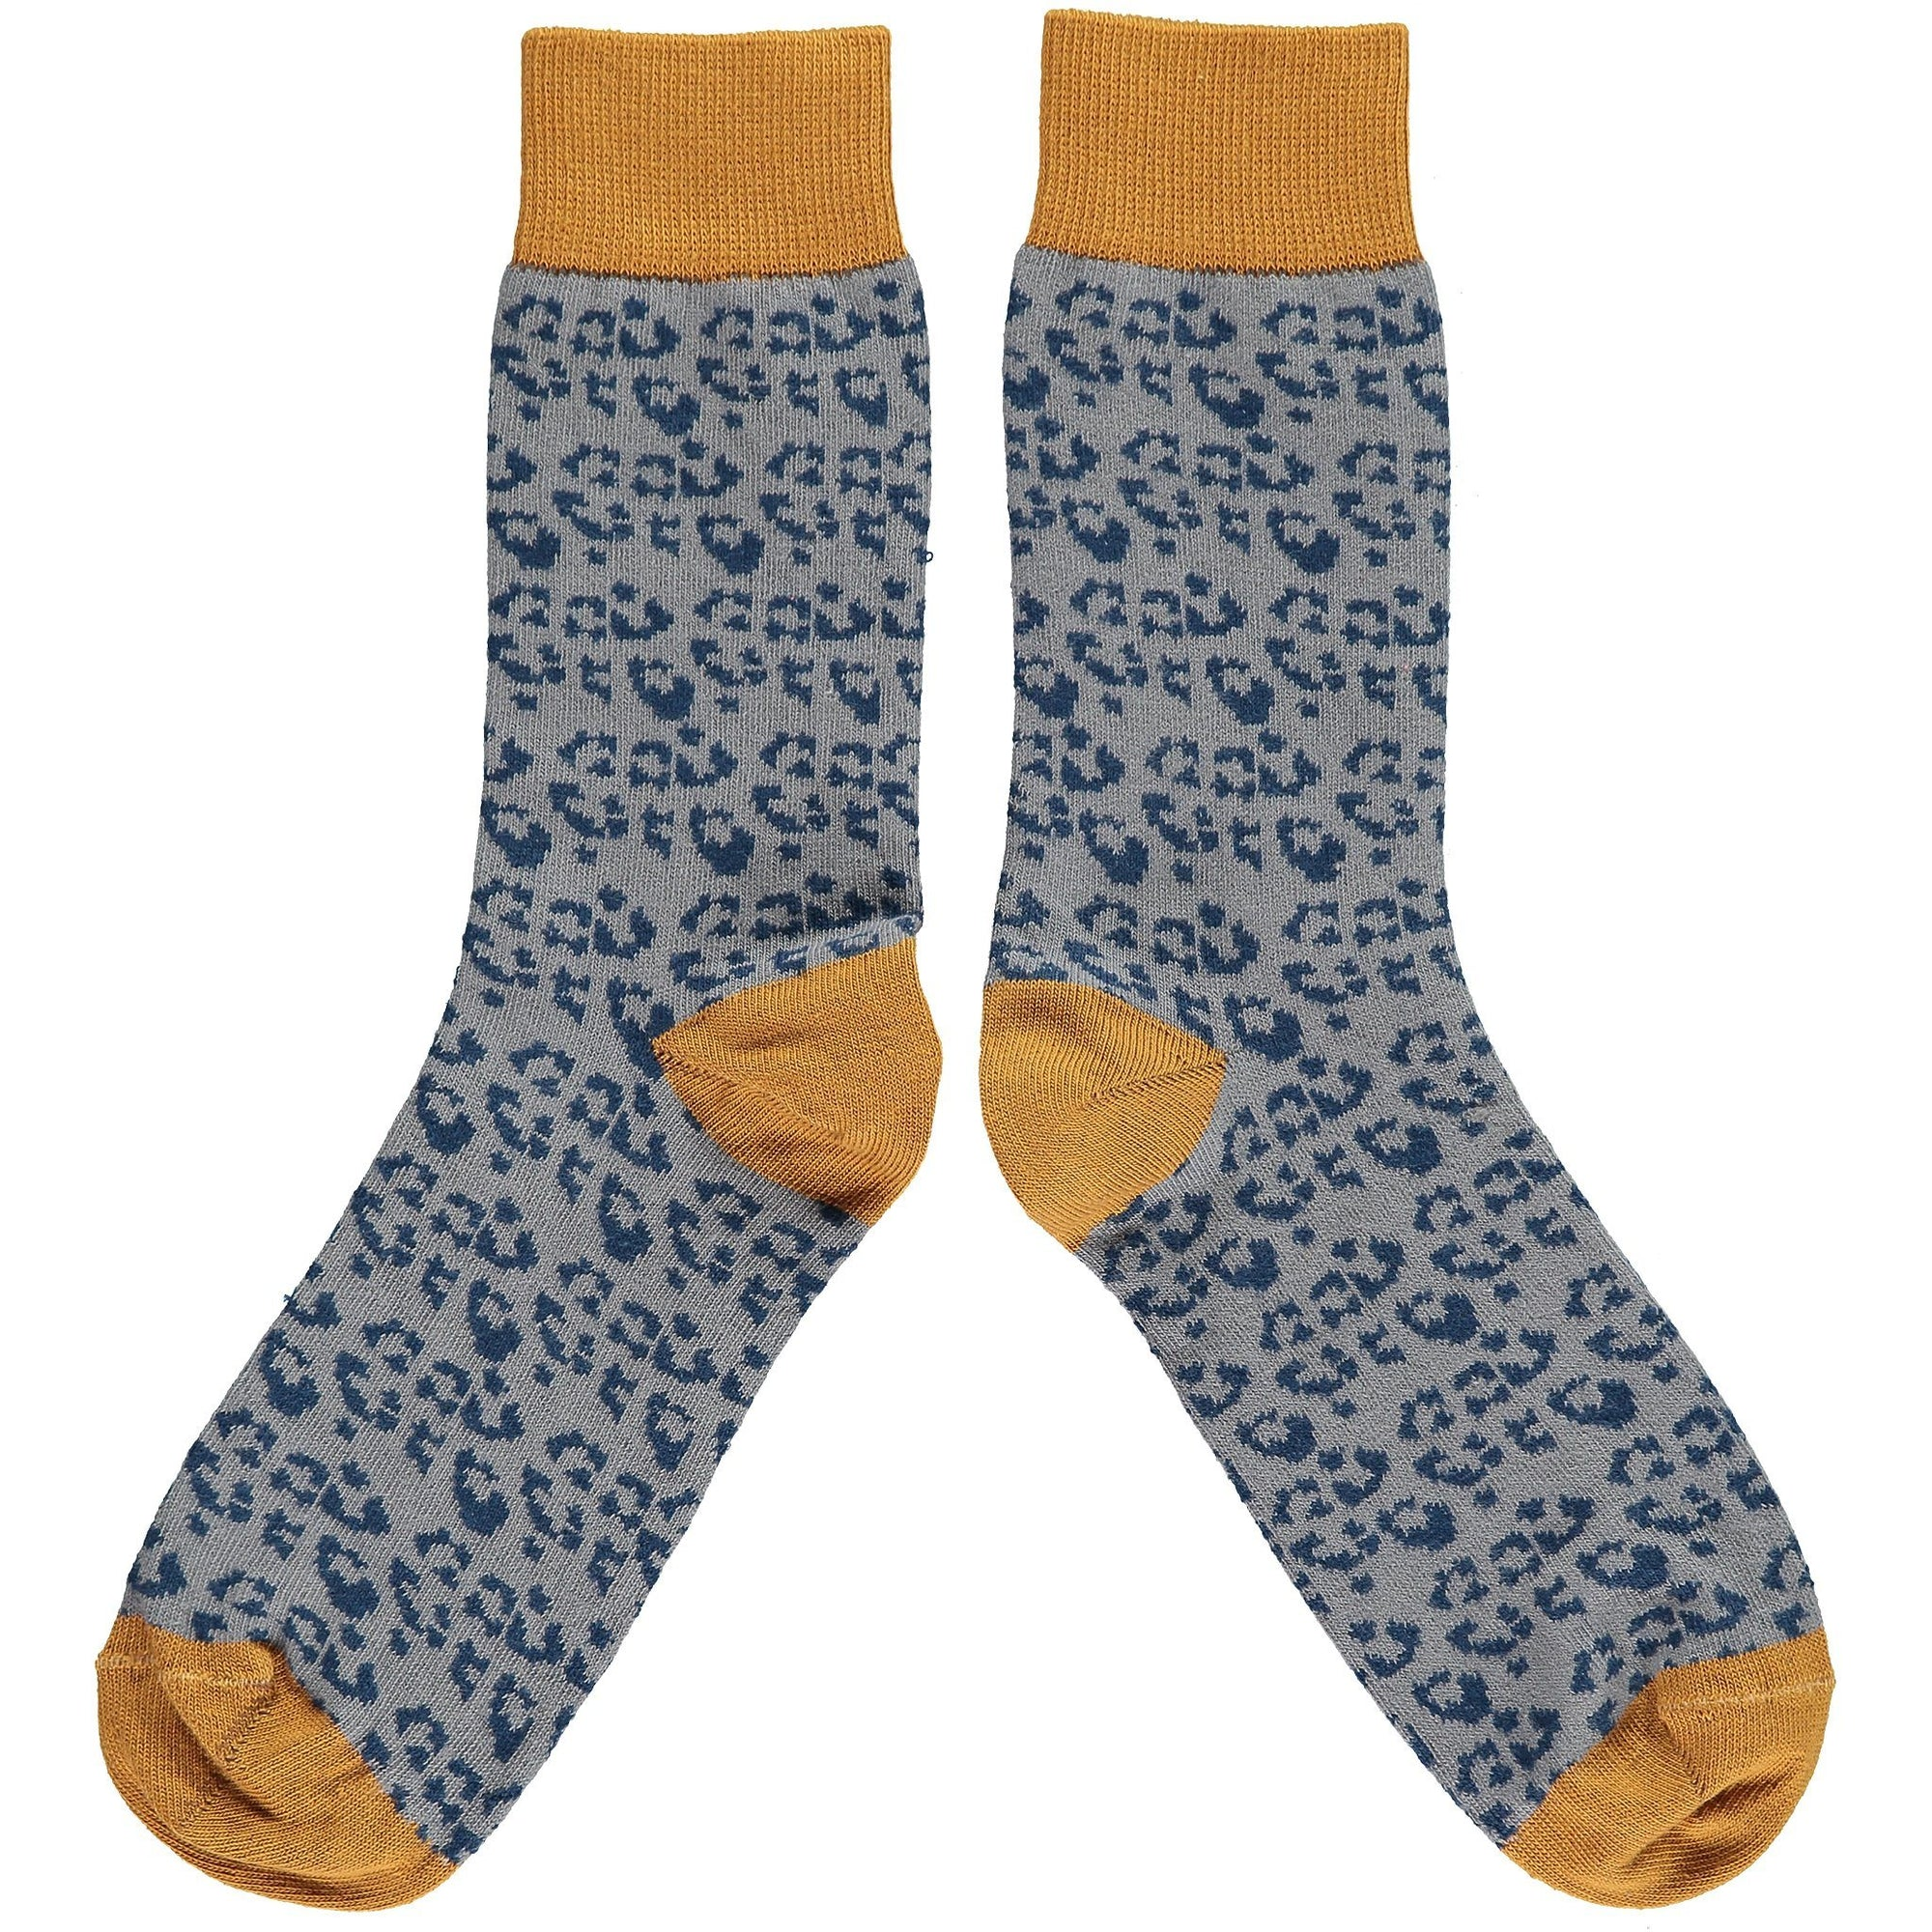 Ladies Leopard Print Cotton Ankle Socks - BouChic